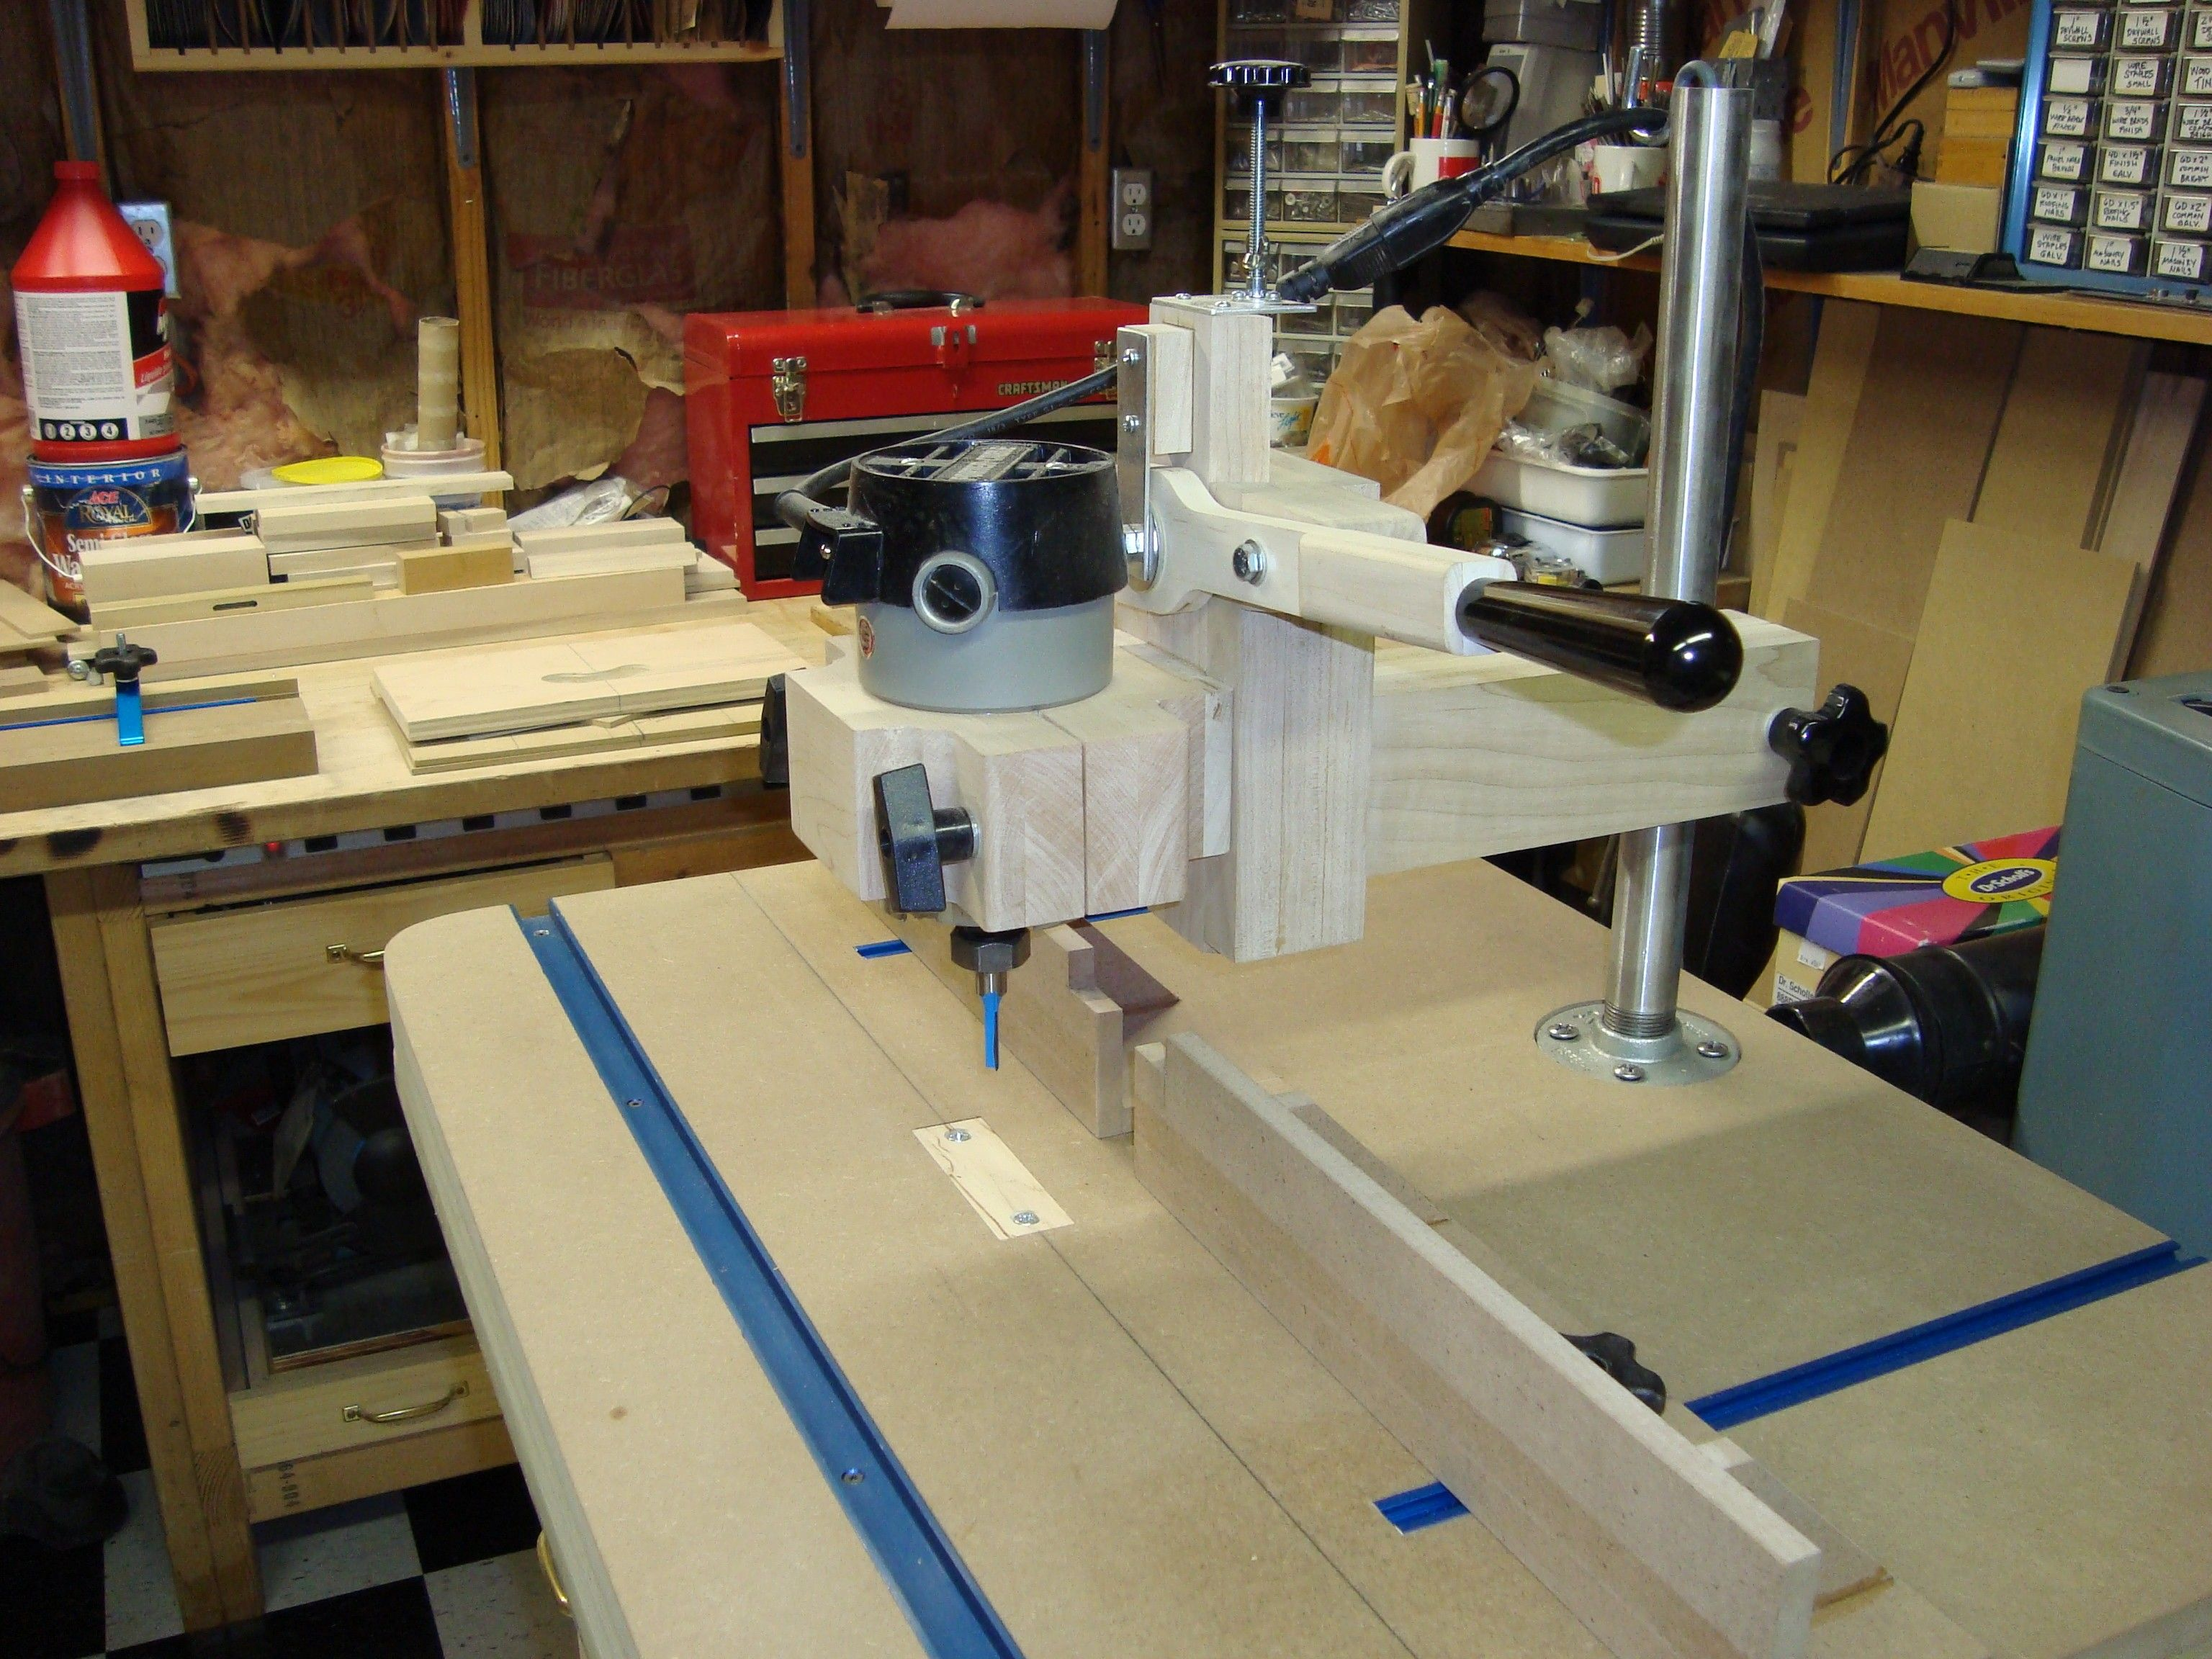 Overarm router jig using a beautifully simple lever arm and overarm router jig using a beautifully simple lever arm and dovetailed ways to lower the bit into the workpiece from above a pin in the table can follow a greentooth Gallery